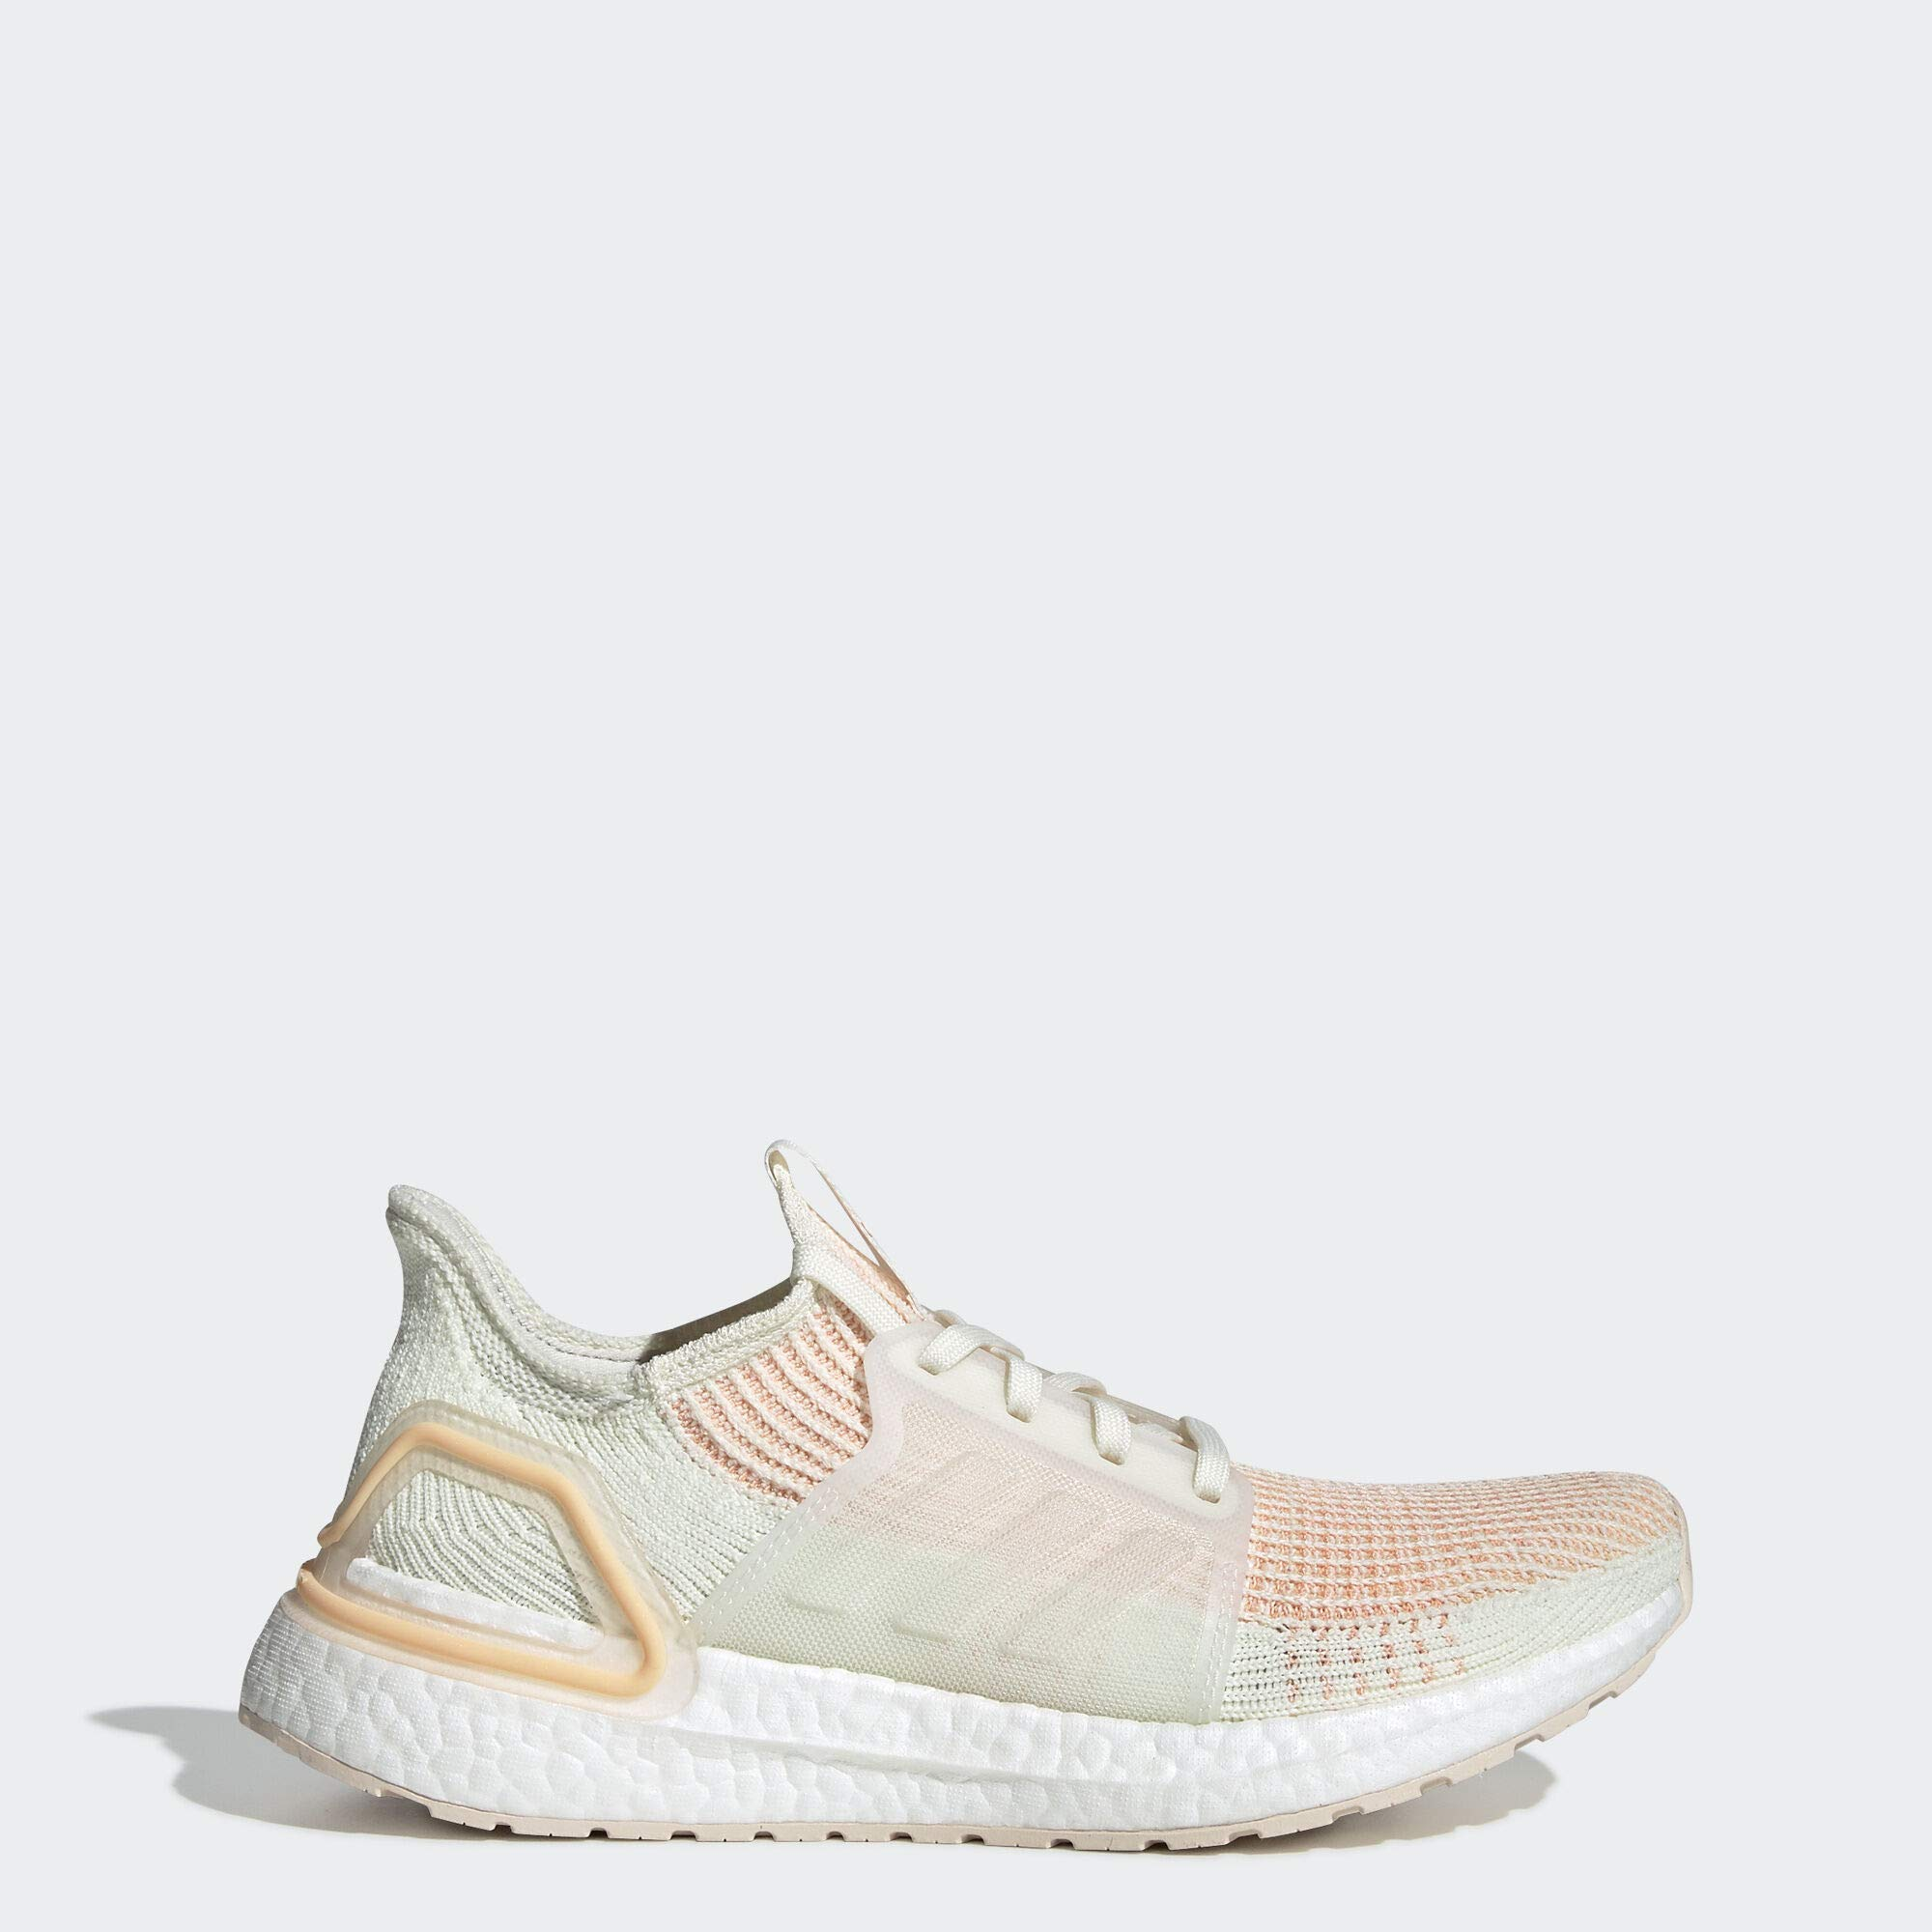 adidas Women's Ultraboost 19 Running Shoe, Off White/Glow Orange, 9 M US by adidas